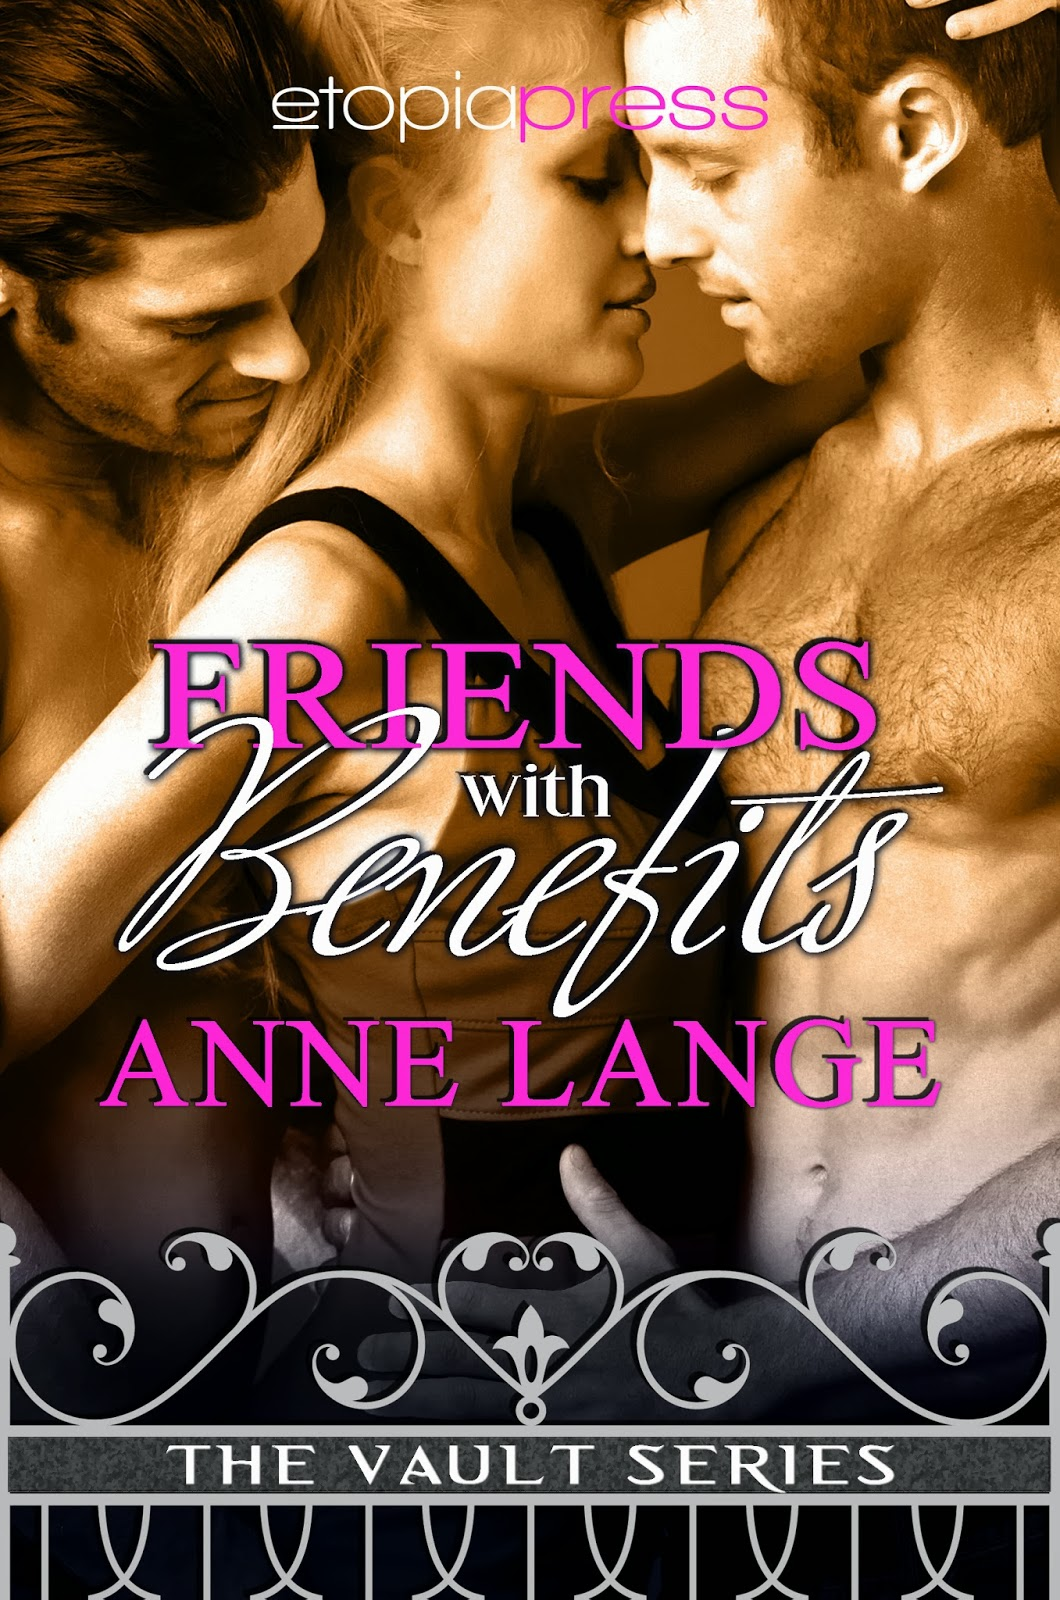 Friends with benefits amazon video